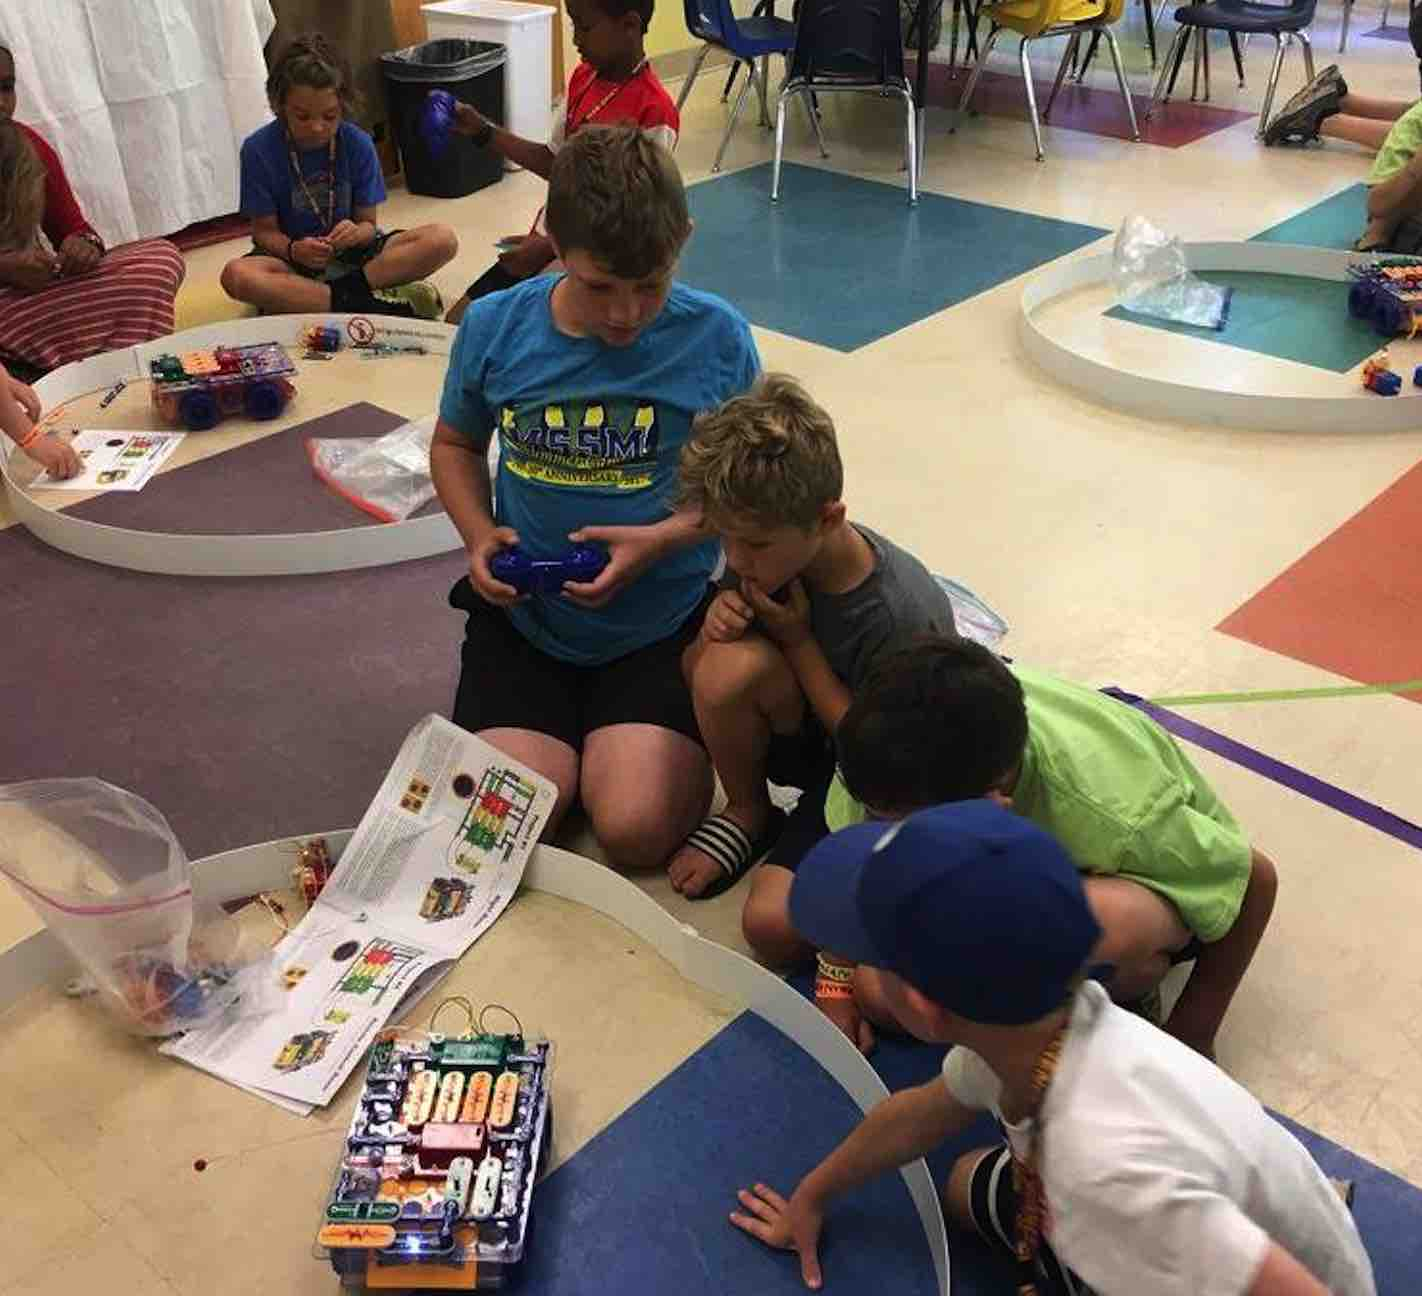 Robotics Camps In Maine Blocks And Augmentedreality App Teaches Kids Circuitry Basics Handson Get Hands On With An Electronic Discovery System That Features Printed Circuit Board Snap Together Different Combinations